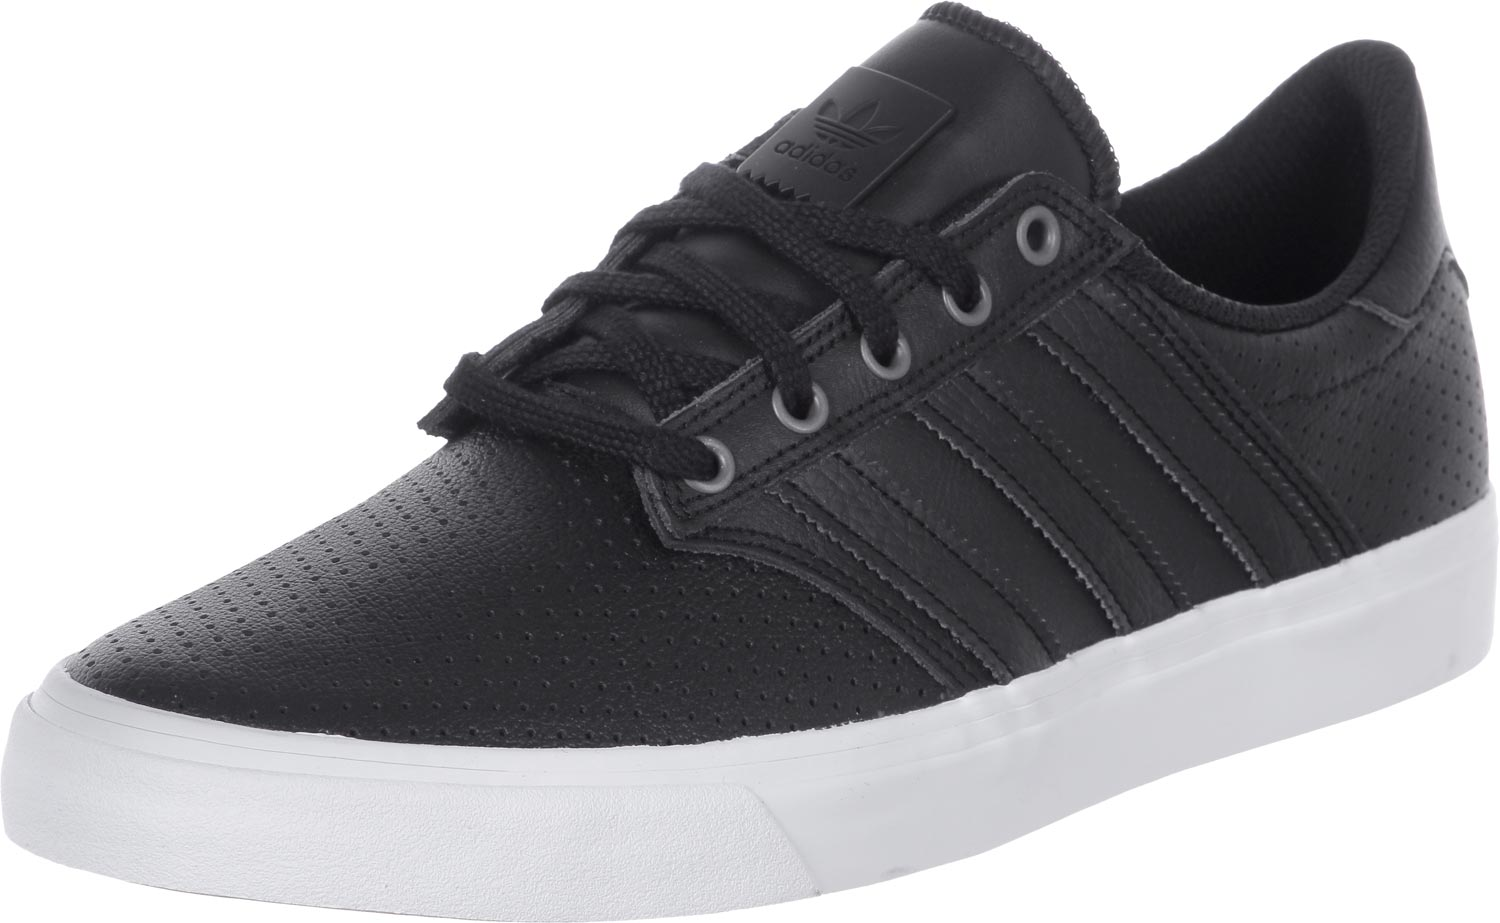 Seeley Premiere Classified Baskets low Hommes chez Stylefile